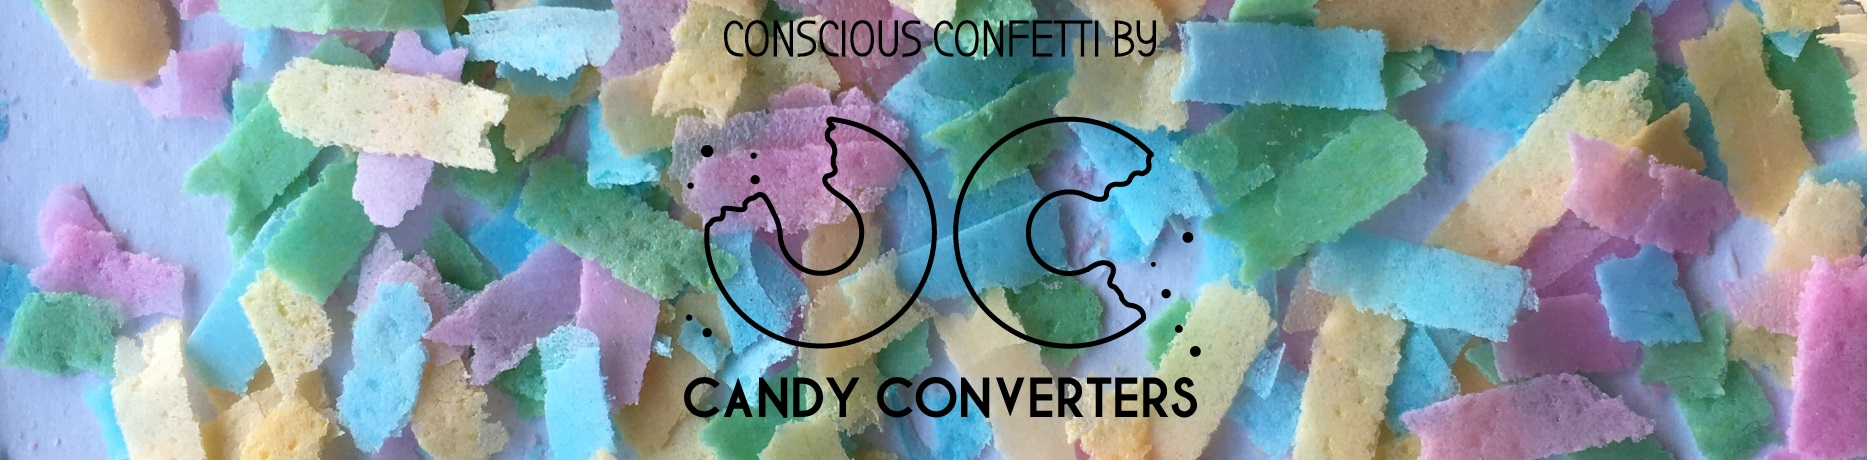 Candy Converters